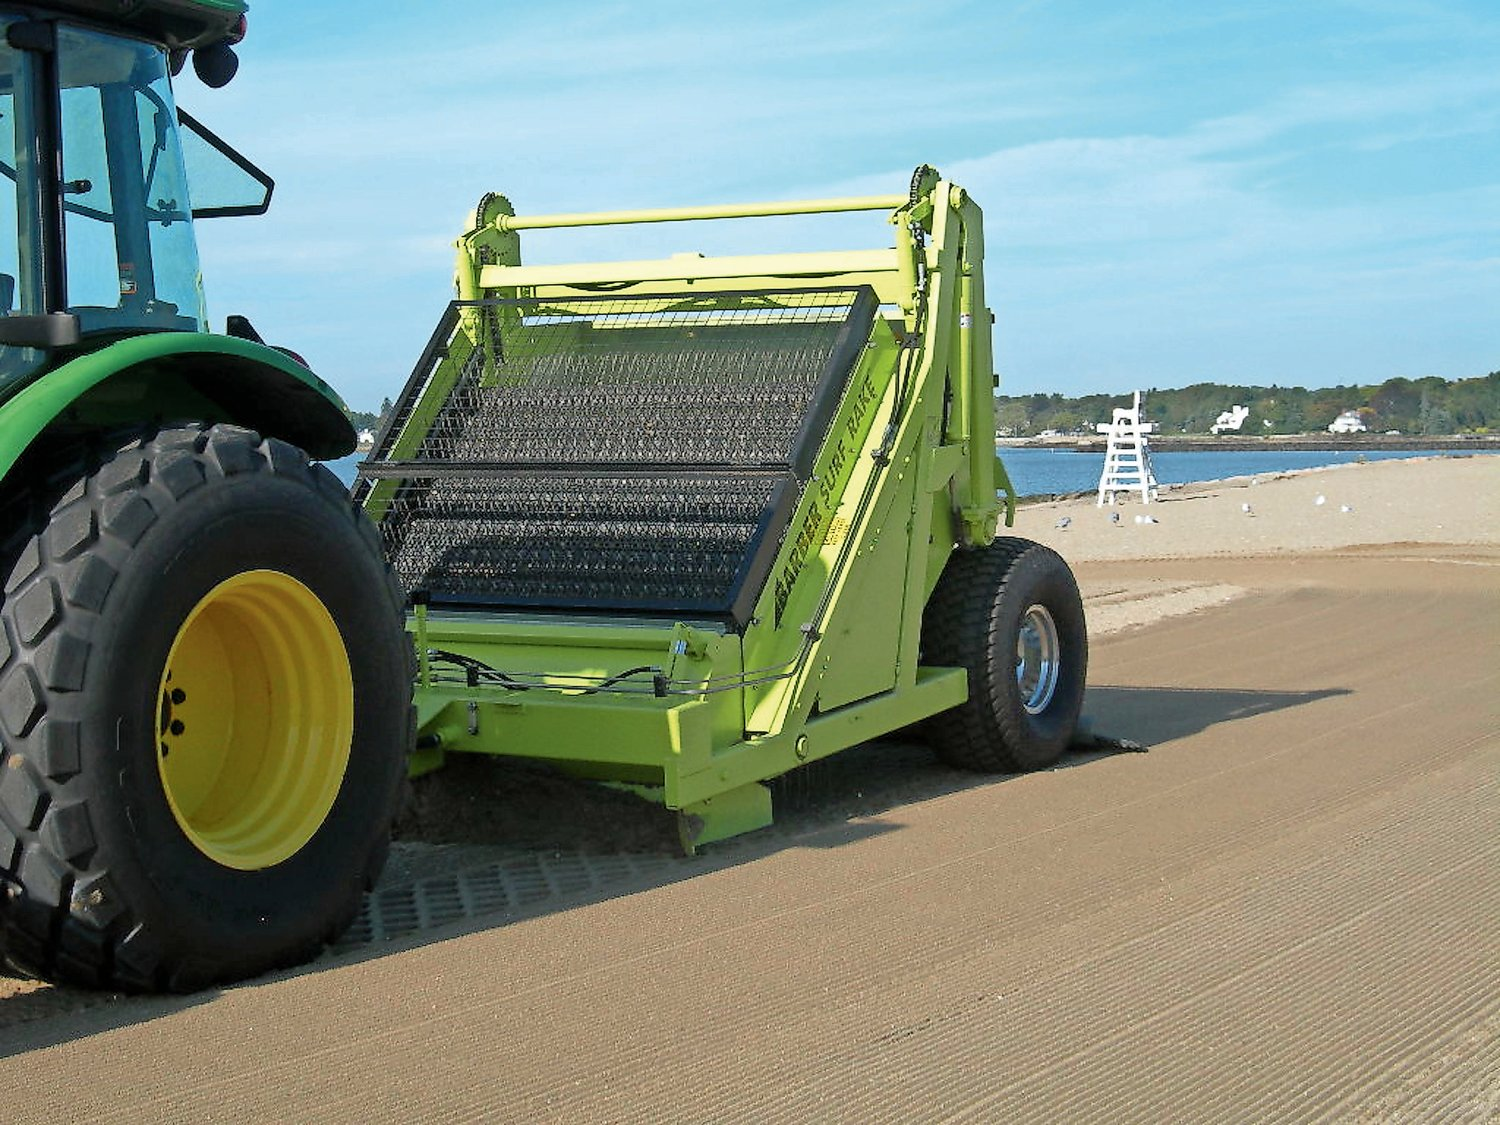 An example of a beach rake machine used by the Town of Oyster Bay at Tappen Beach in Glenwood Landing, Florence Avenue Beach and Tobay Beach in Massapequa and Theodore Roosevelt Memorial Park in Oyster Bay.